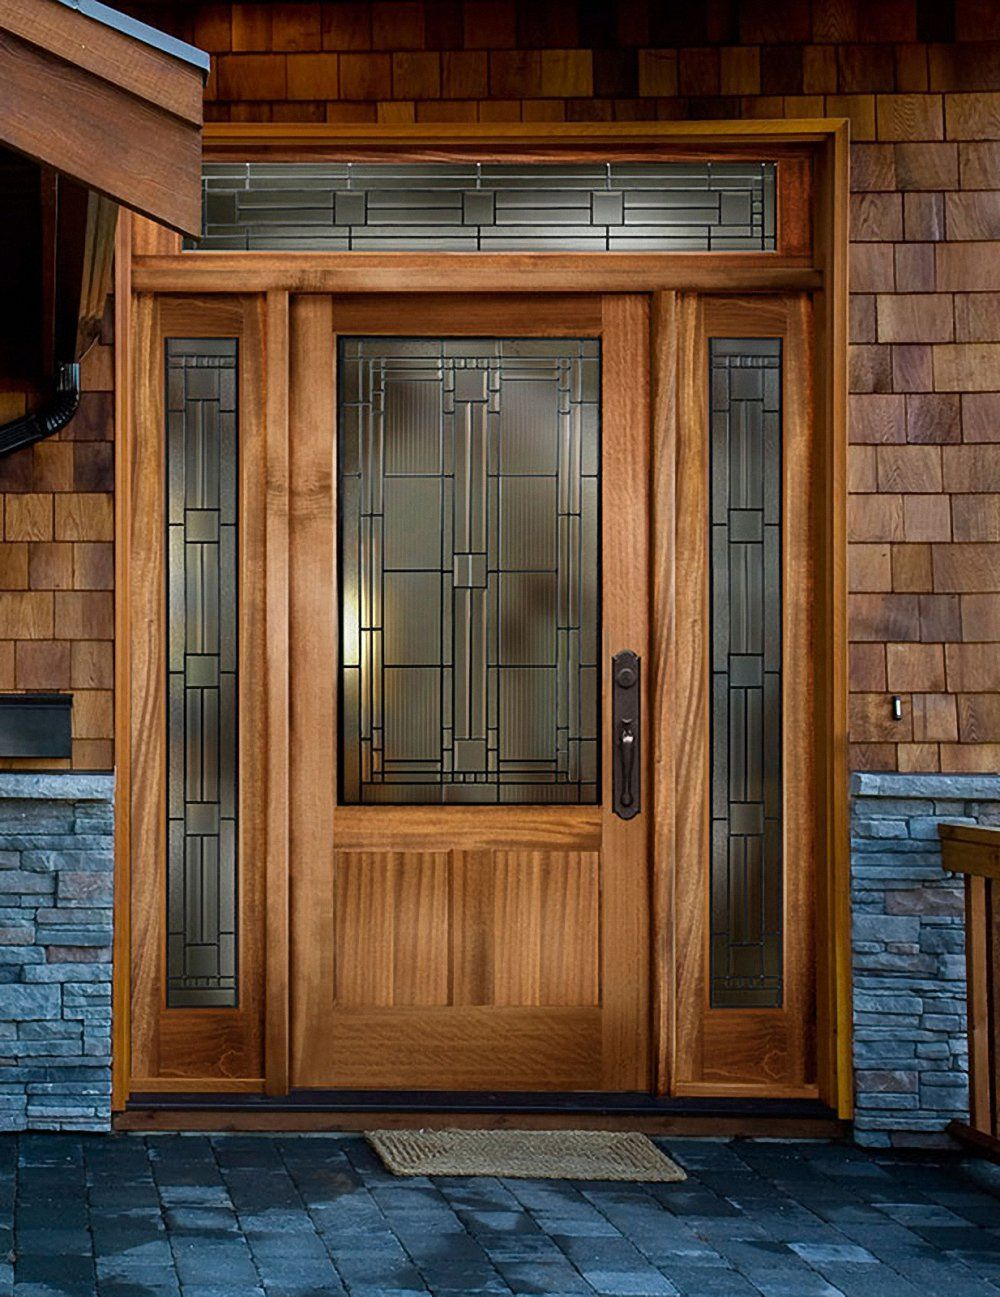 Improve your entrances with decorative door design | MOTIQ Online ...